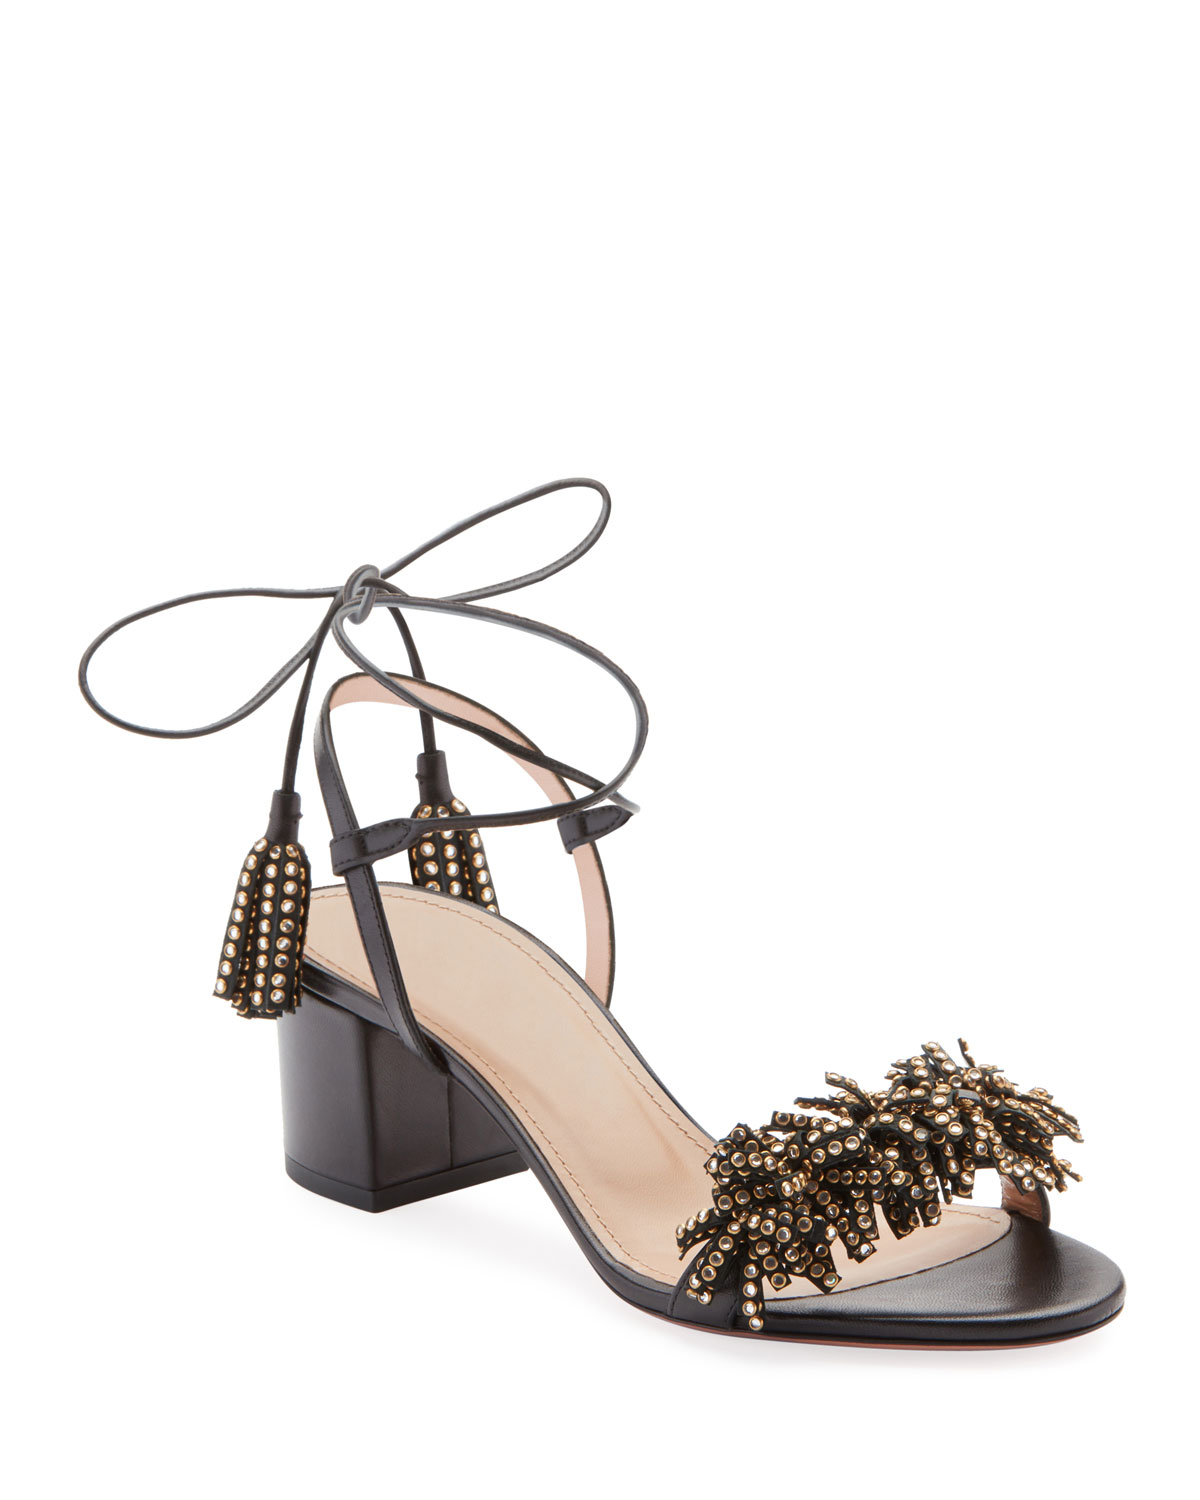 Wild Crystal Fringed Block Sandals in Black